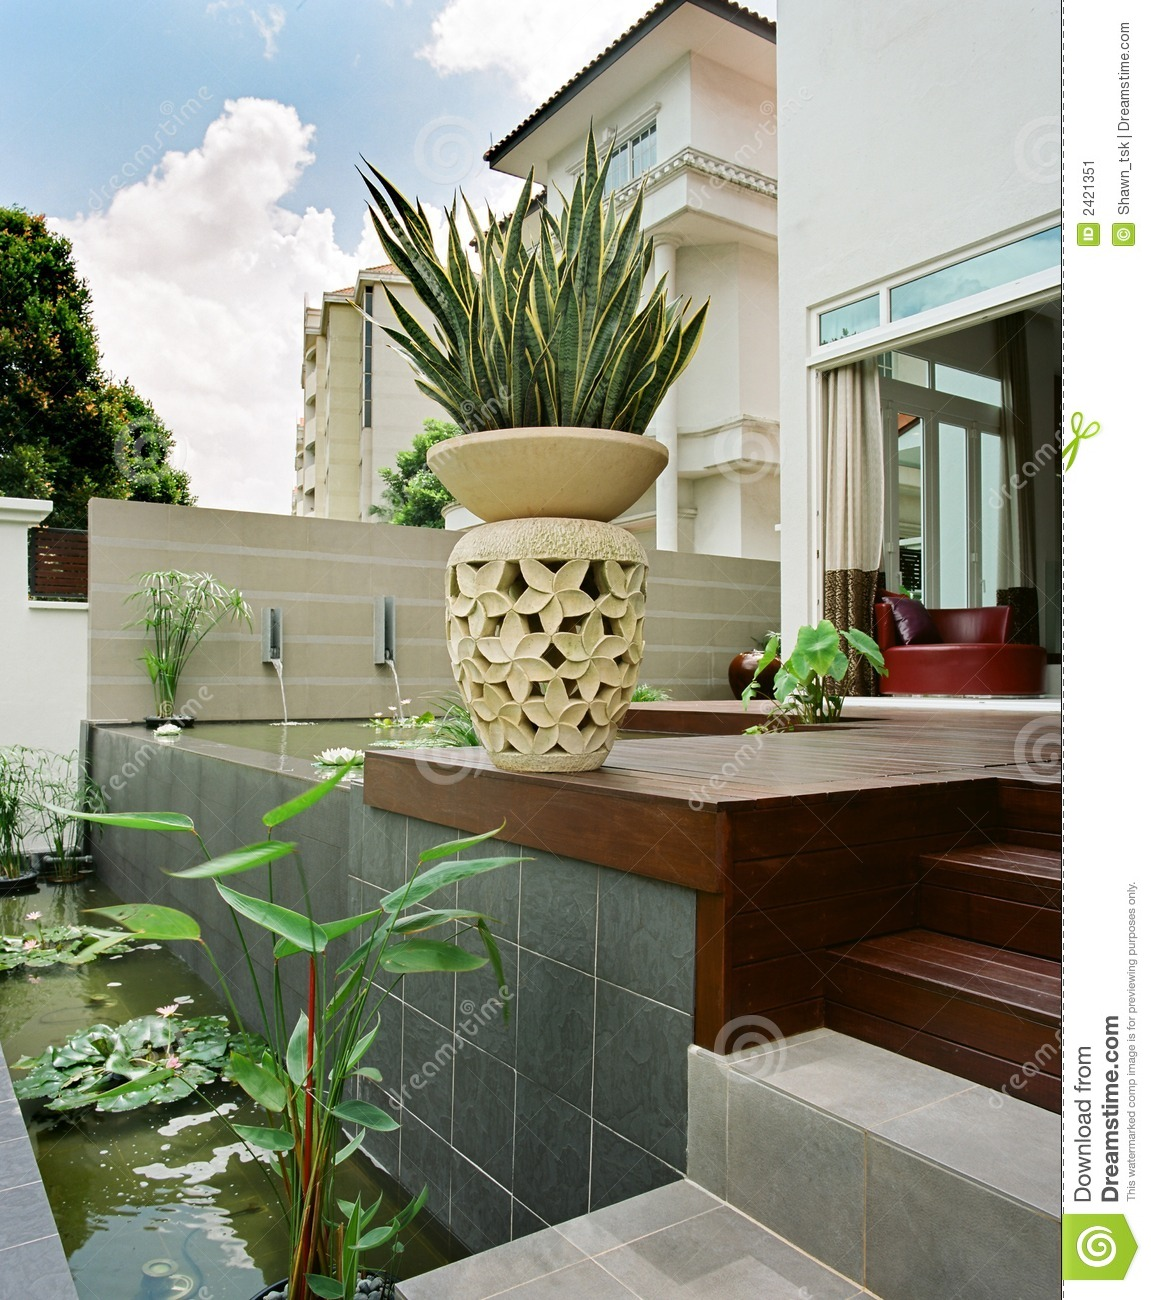 Interior Design Garden Stock Image Image Of Design